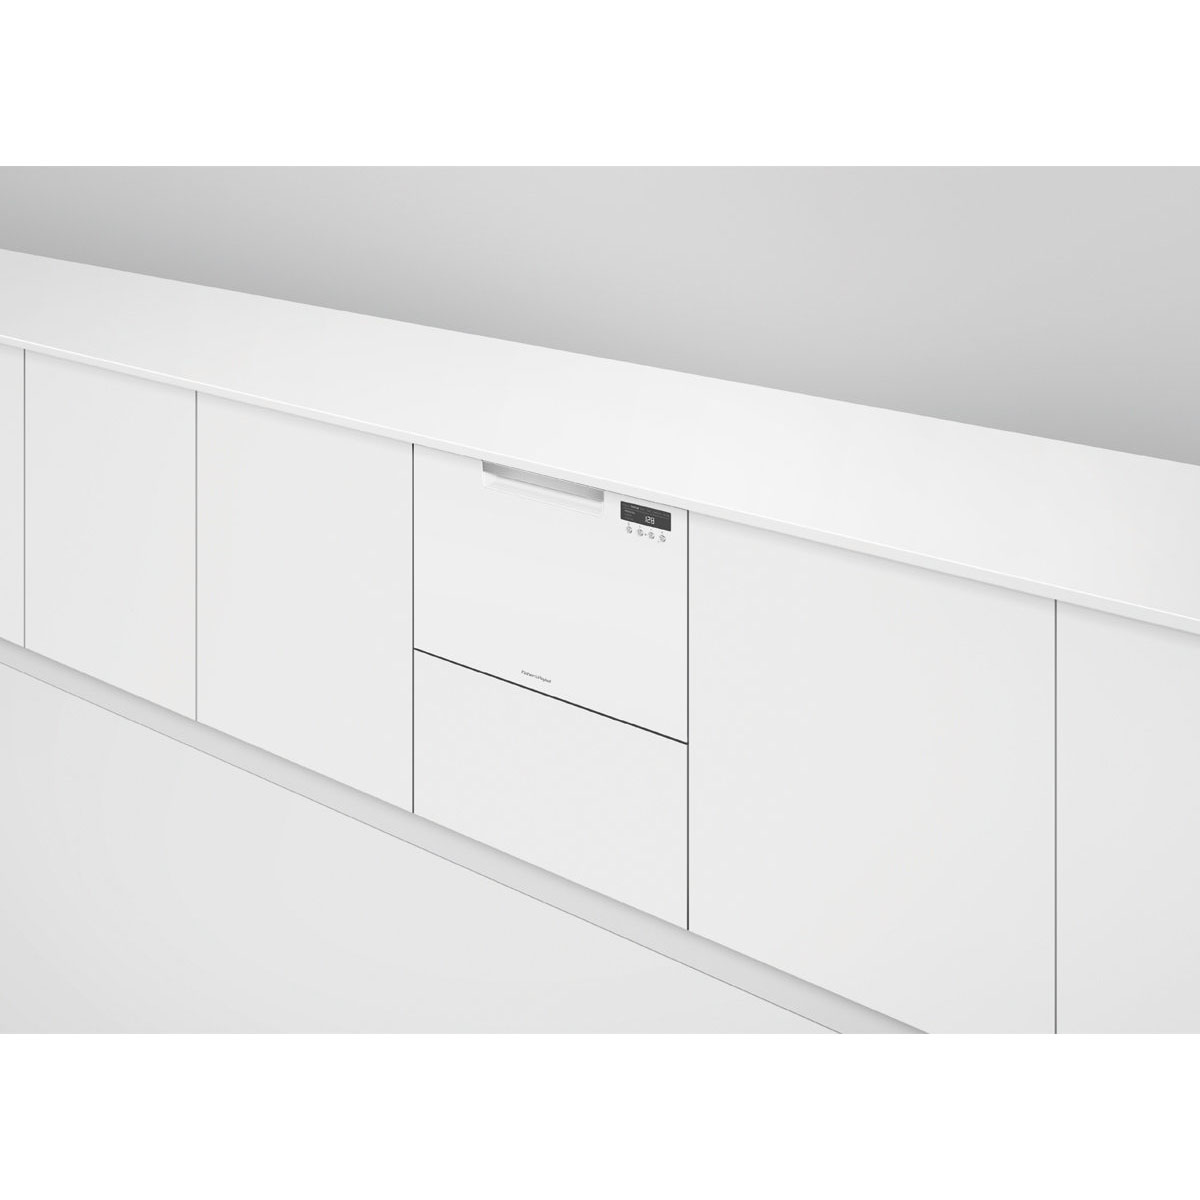 Fisher paykel dd60scw9 dishdrawer home clearance - Fisher paykel dishwasher drawer reviews ...